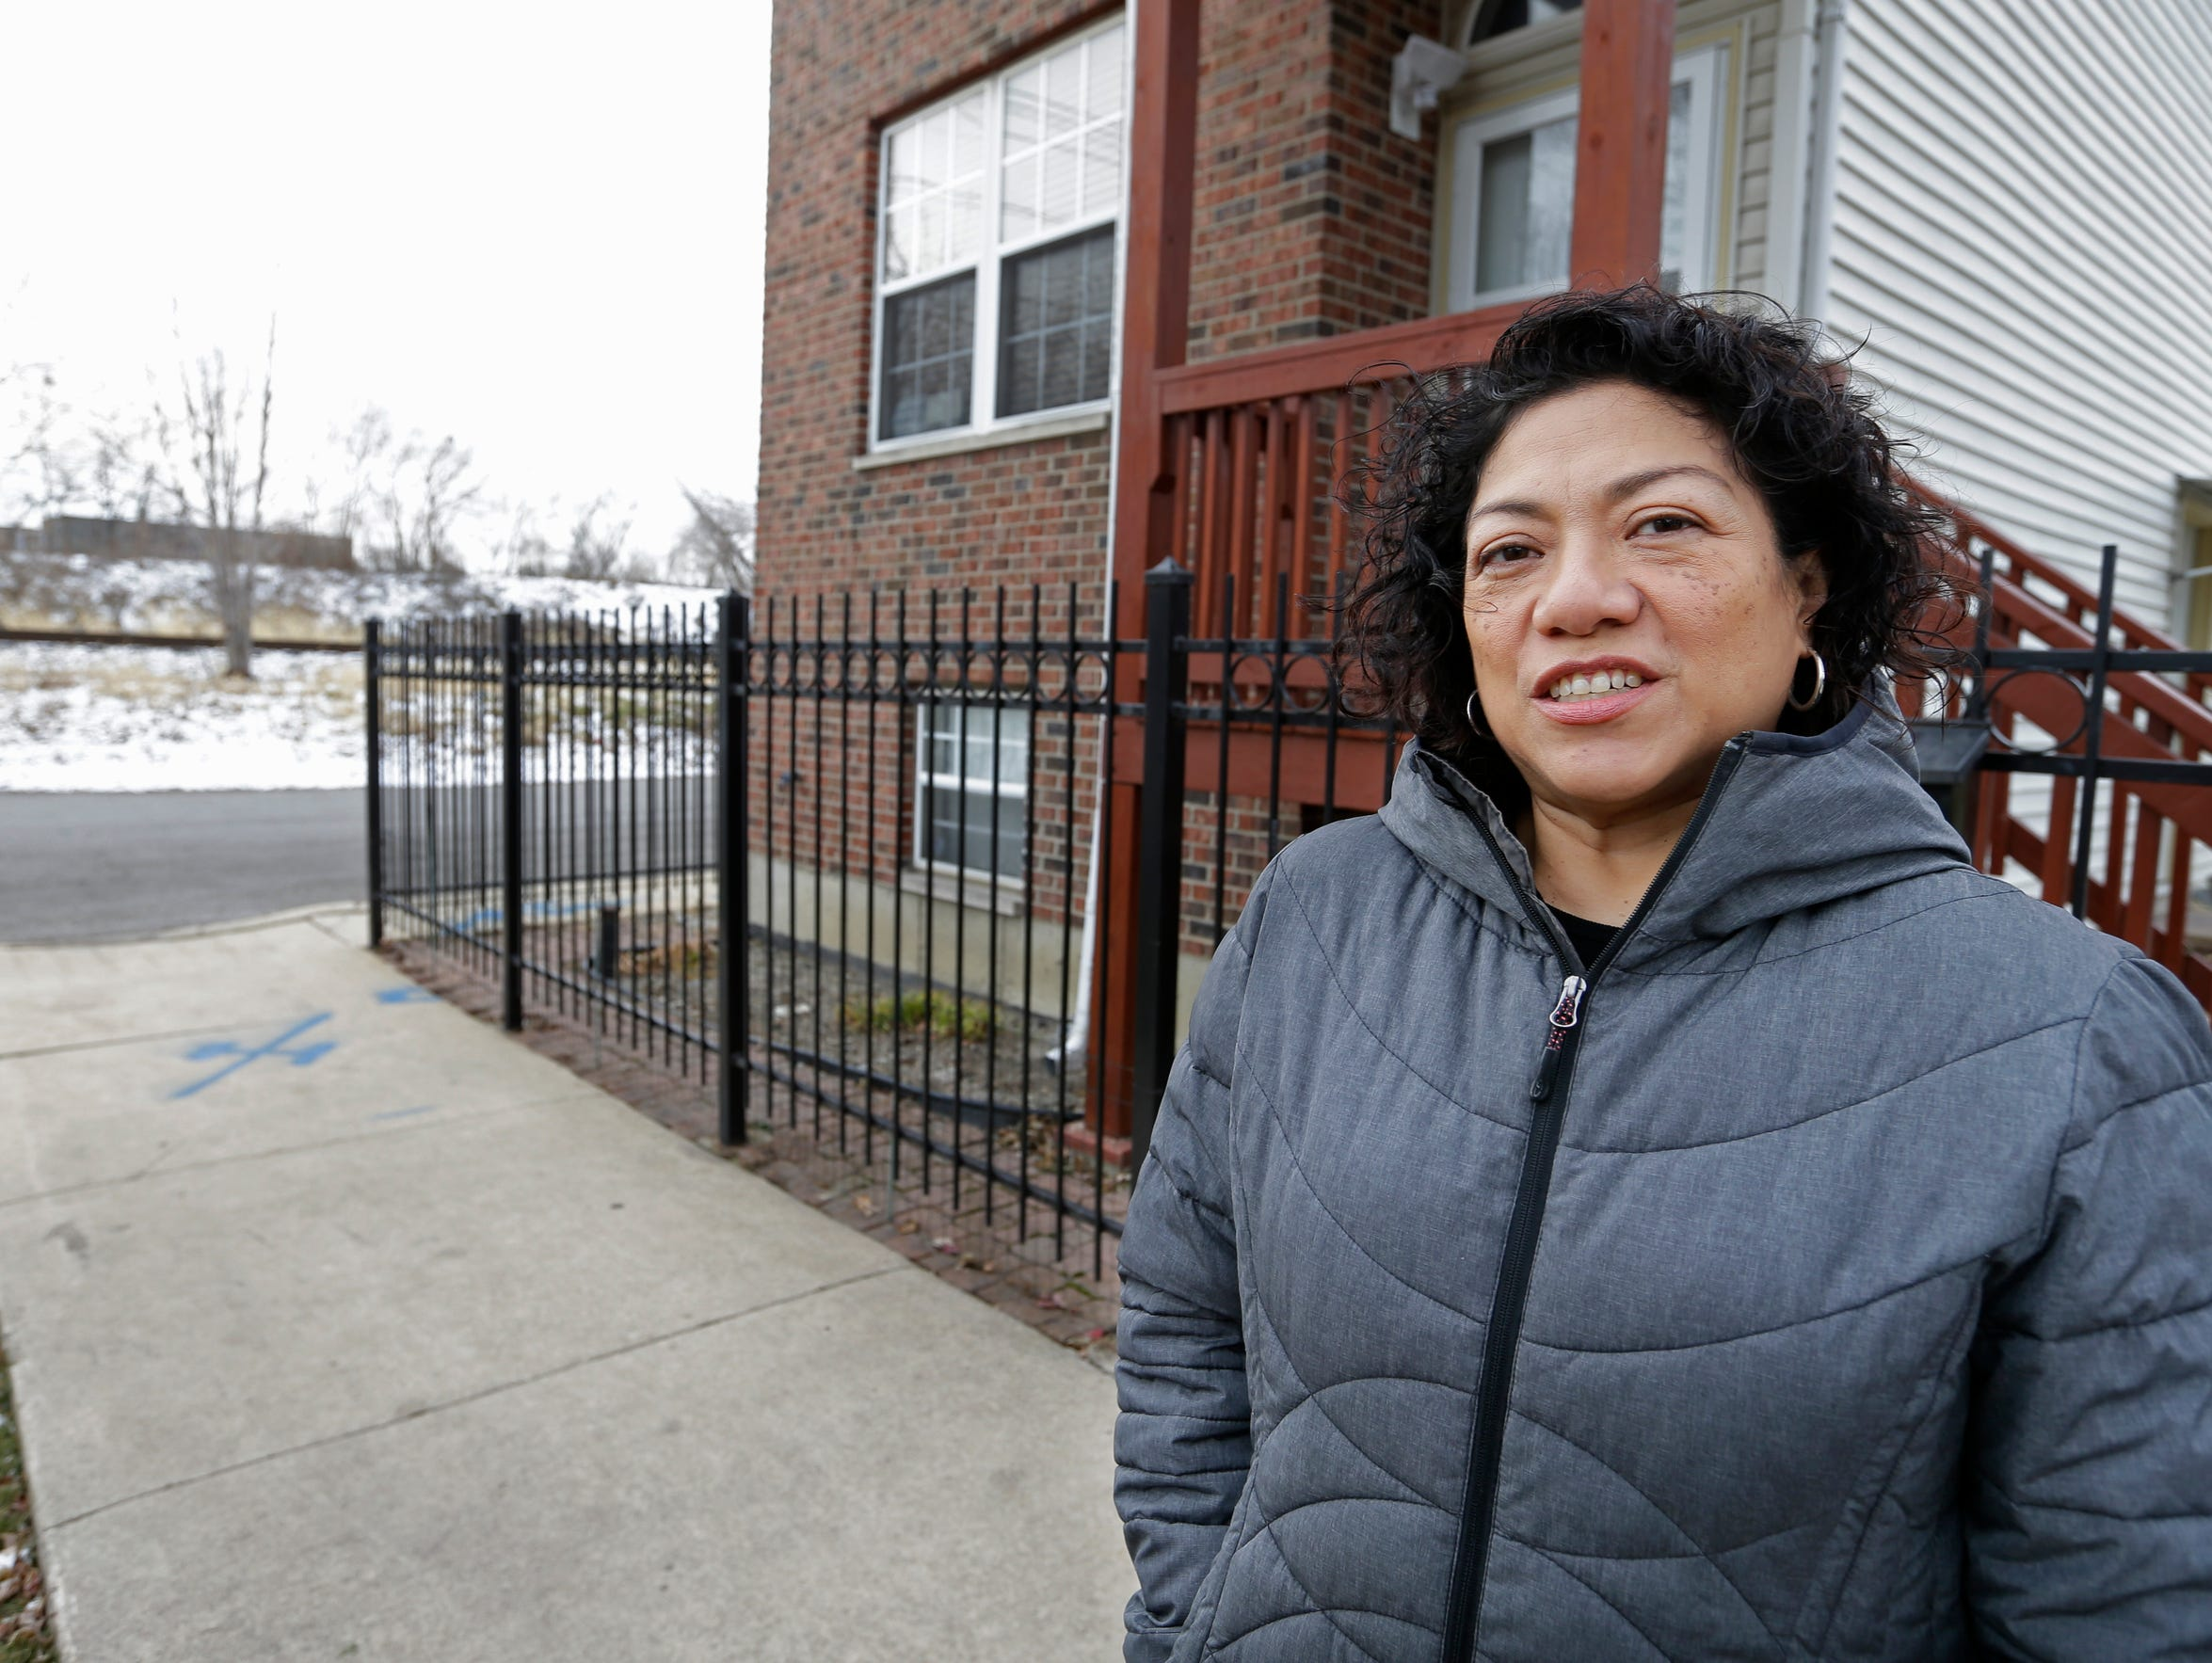 Carlota Trevino, a Chicago resident, lives two blocks from Meyer Steel Drum, a barrel processing plant on Chicago's south side. She says she has endured smelly fumes from the plant for year.